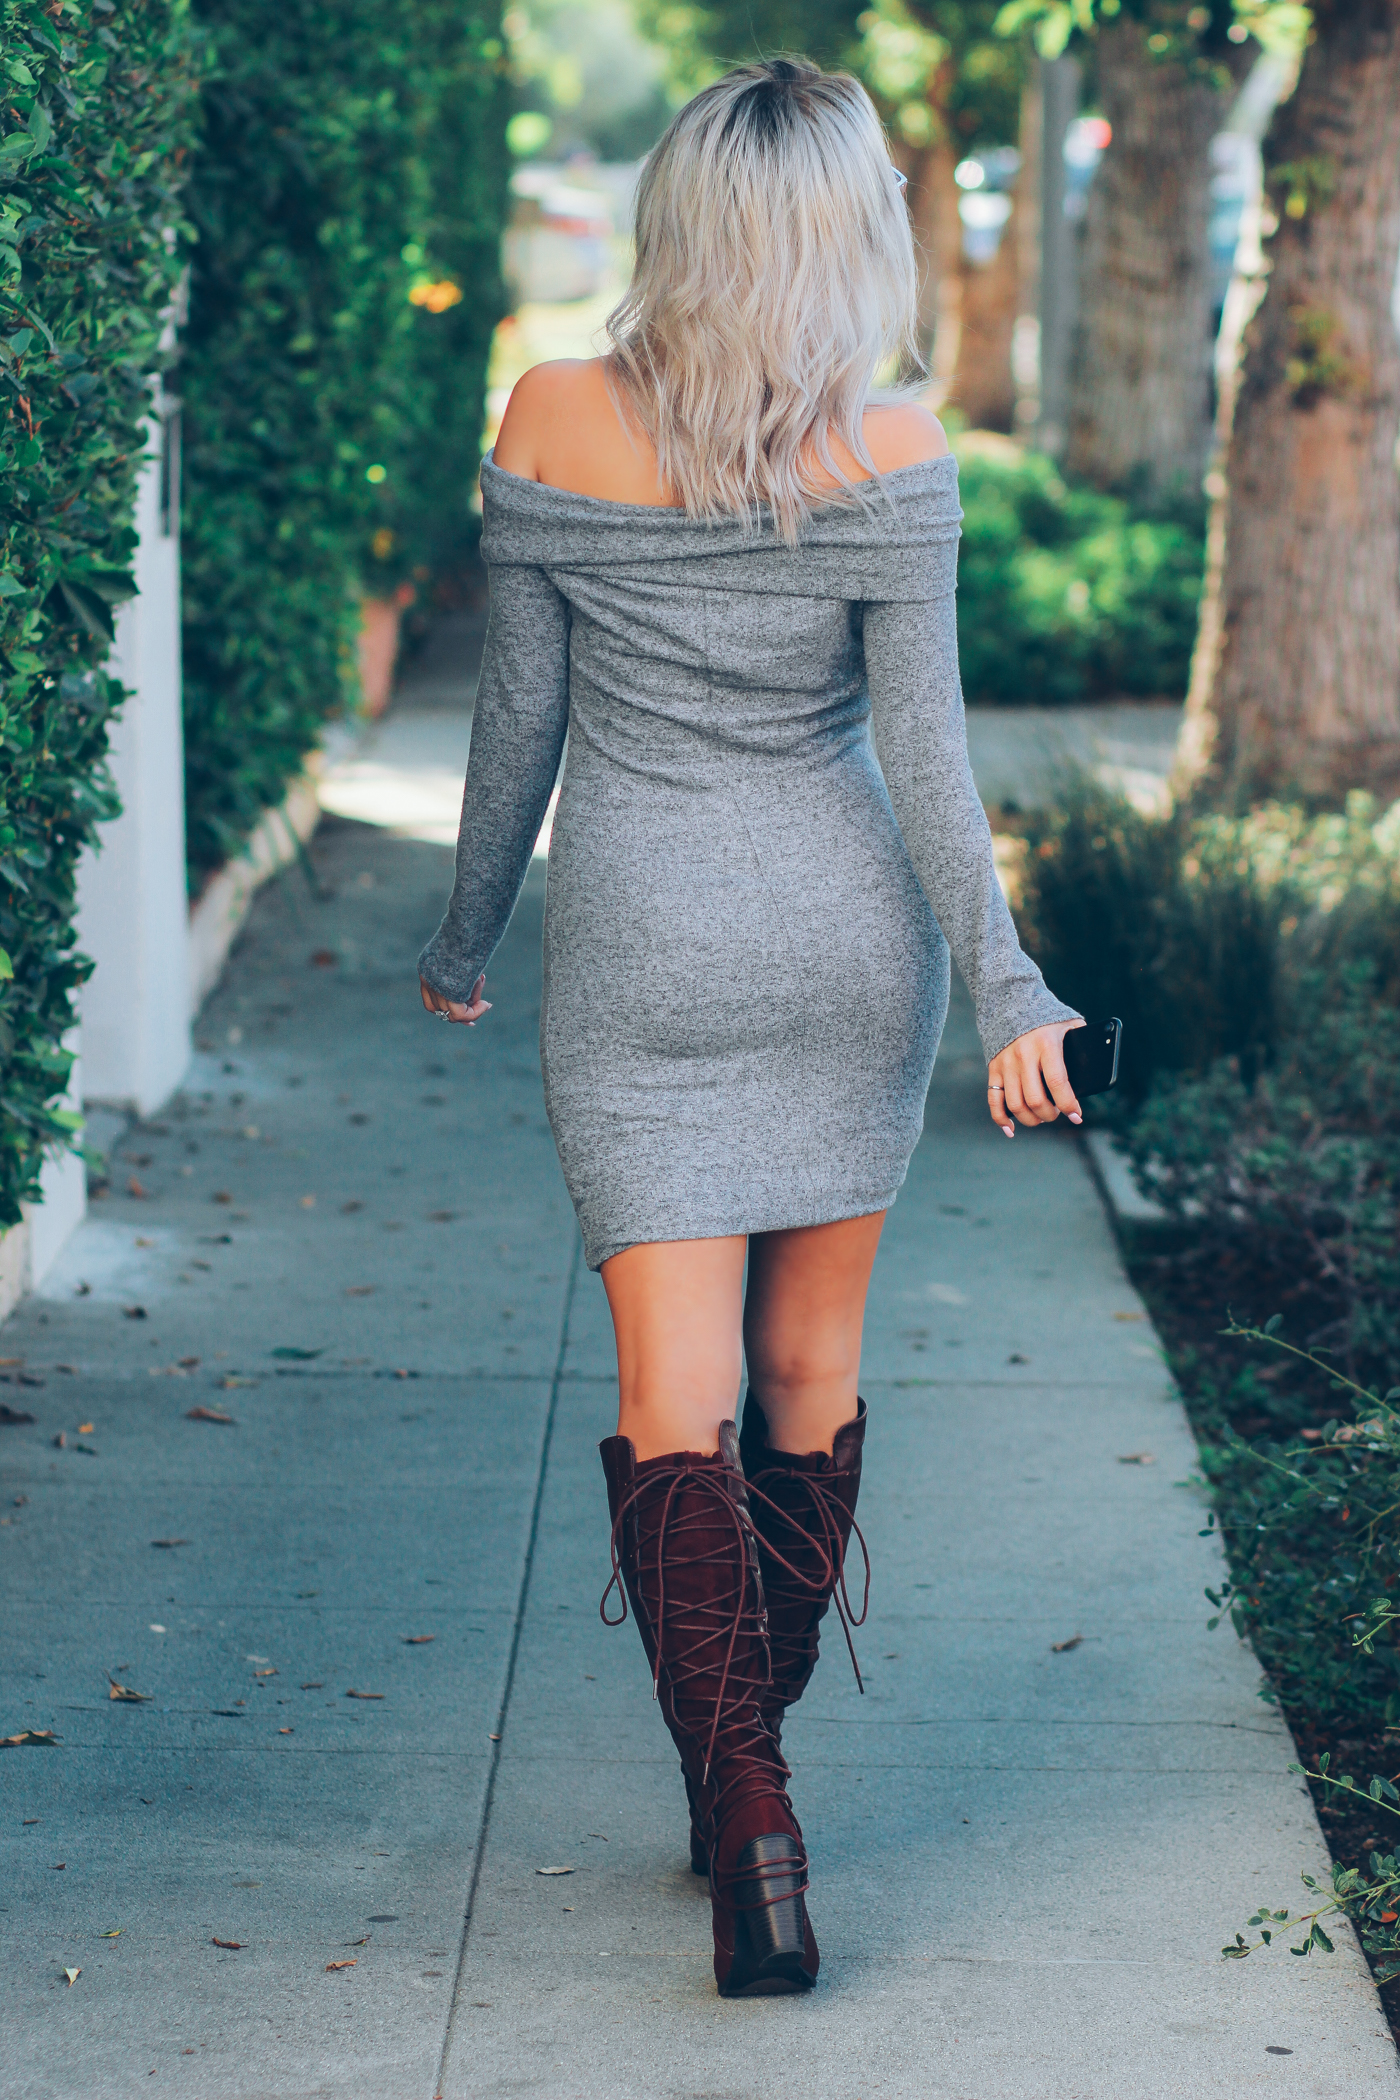 Blondie in the City | Off the Shoulder Sweater Dress @justfabonline | Burgundy boots for Fall @shoedazzle